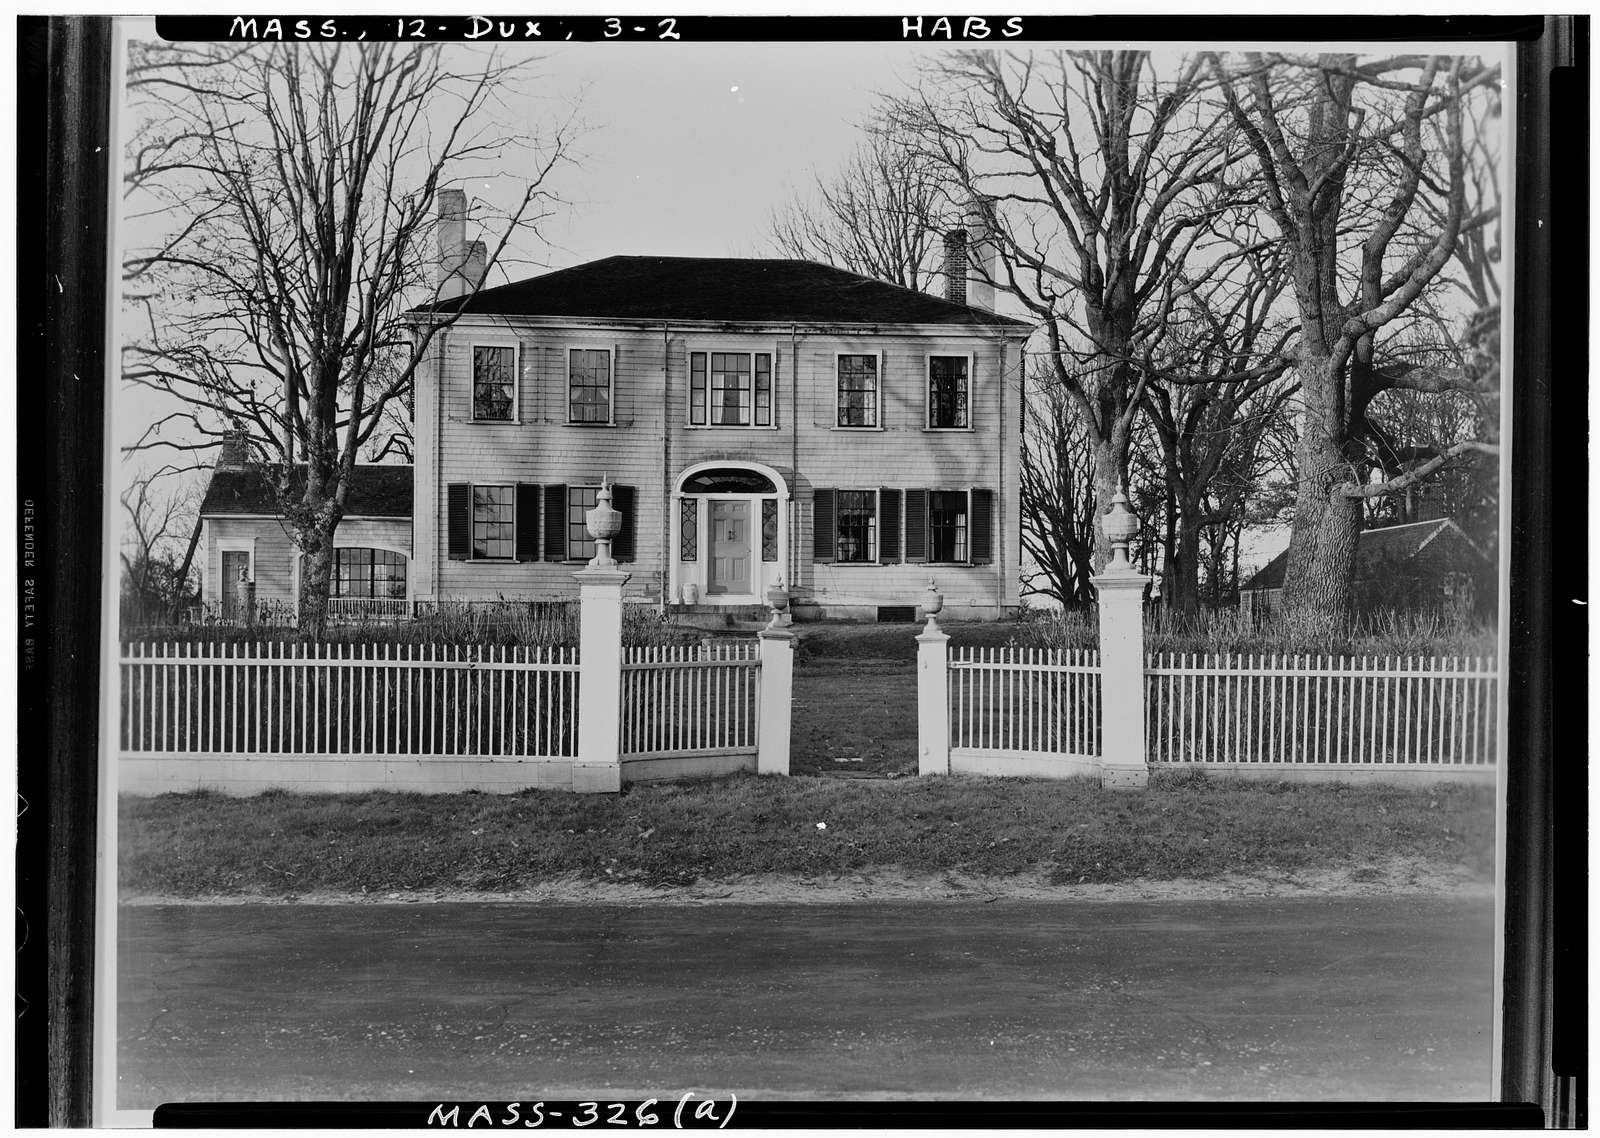 King Caesar House, King Caesar Road, Powder Point, Duxbury, Plymouth County, MA